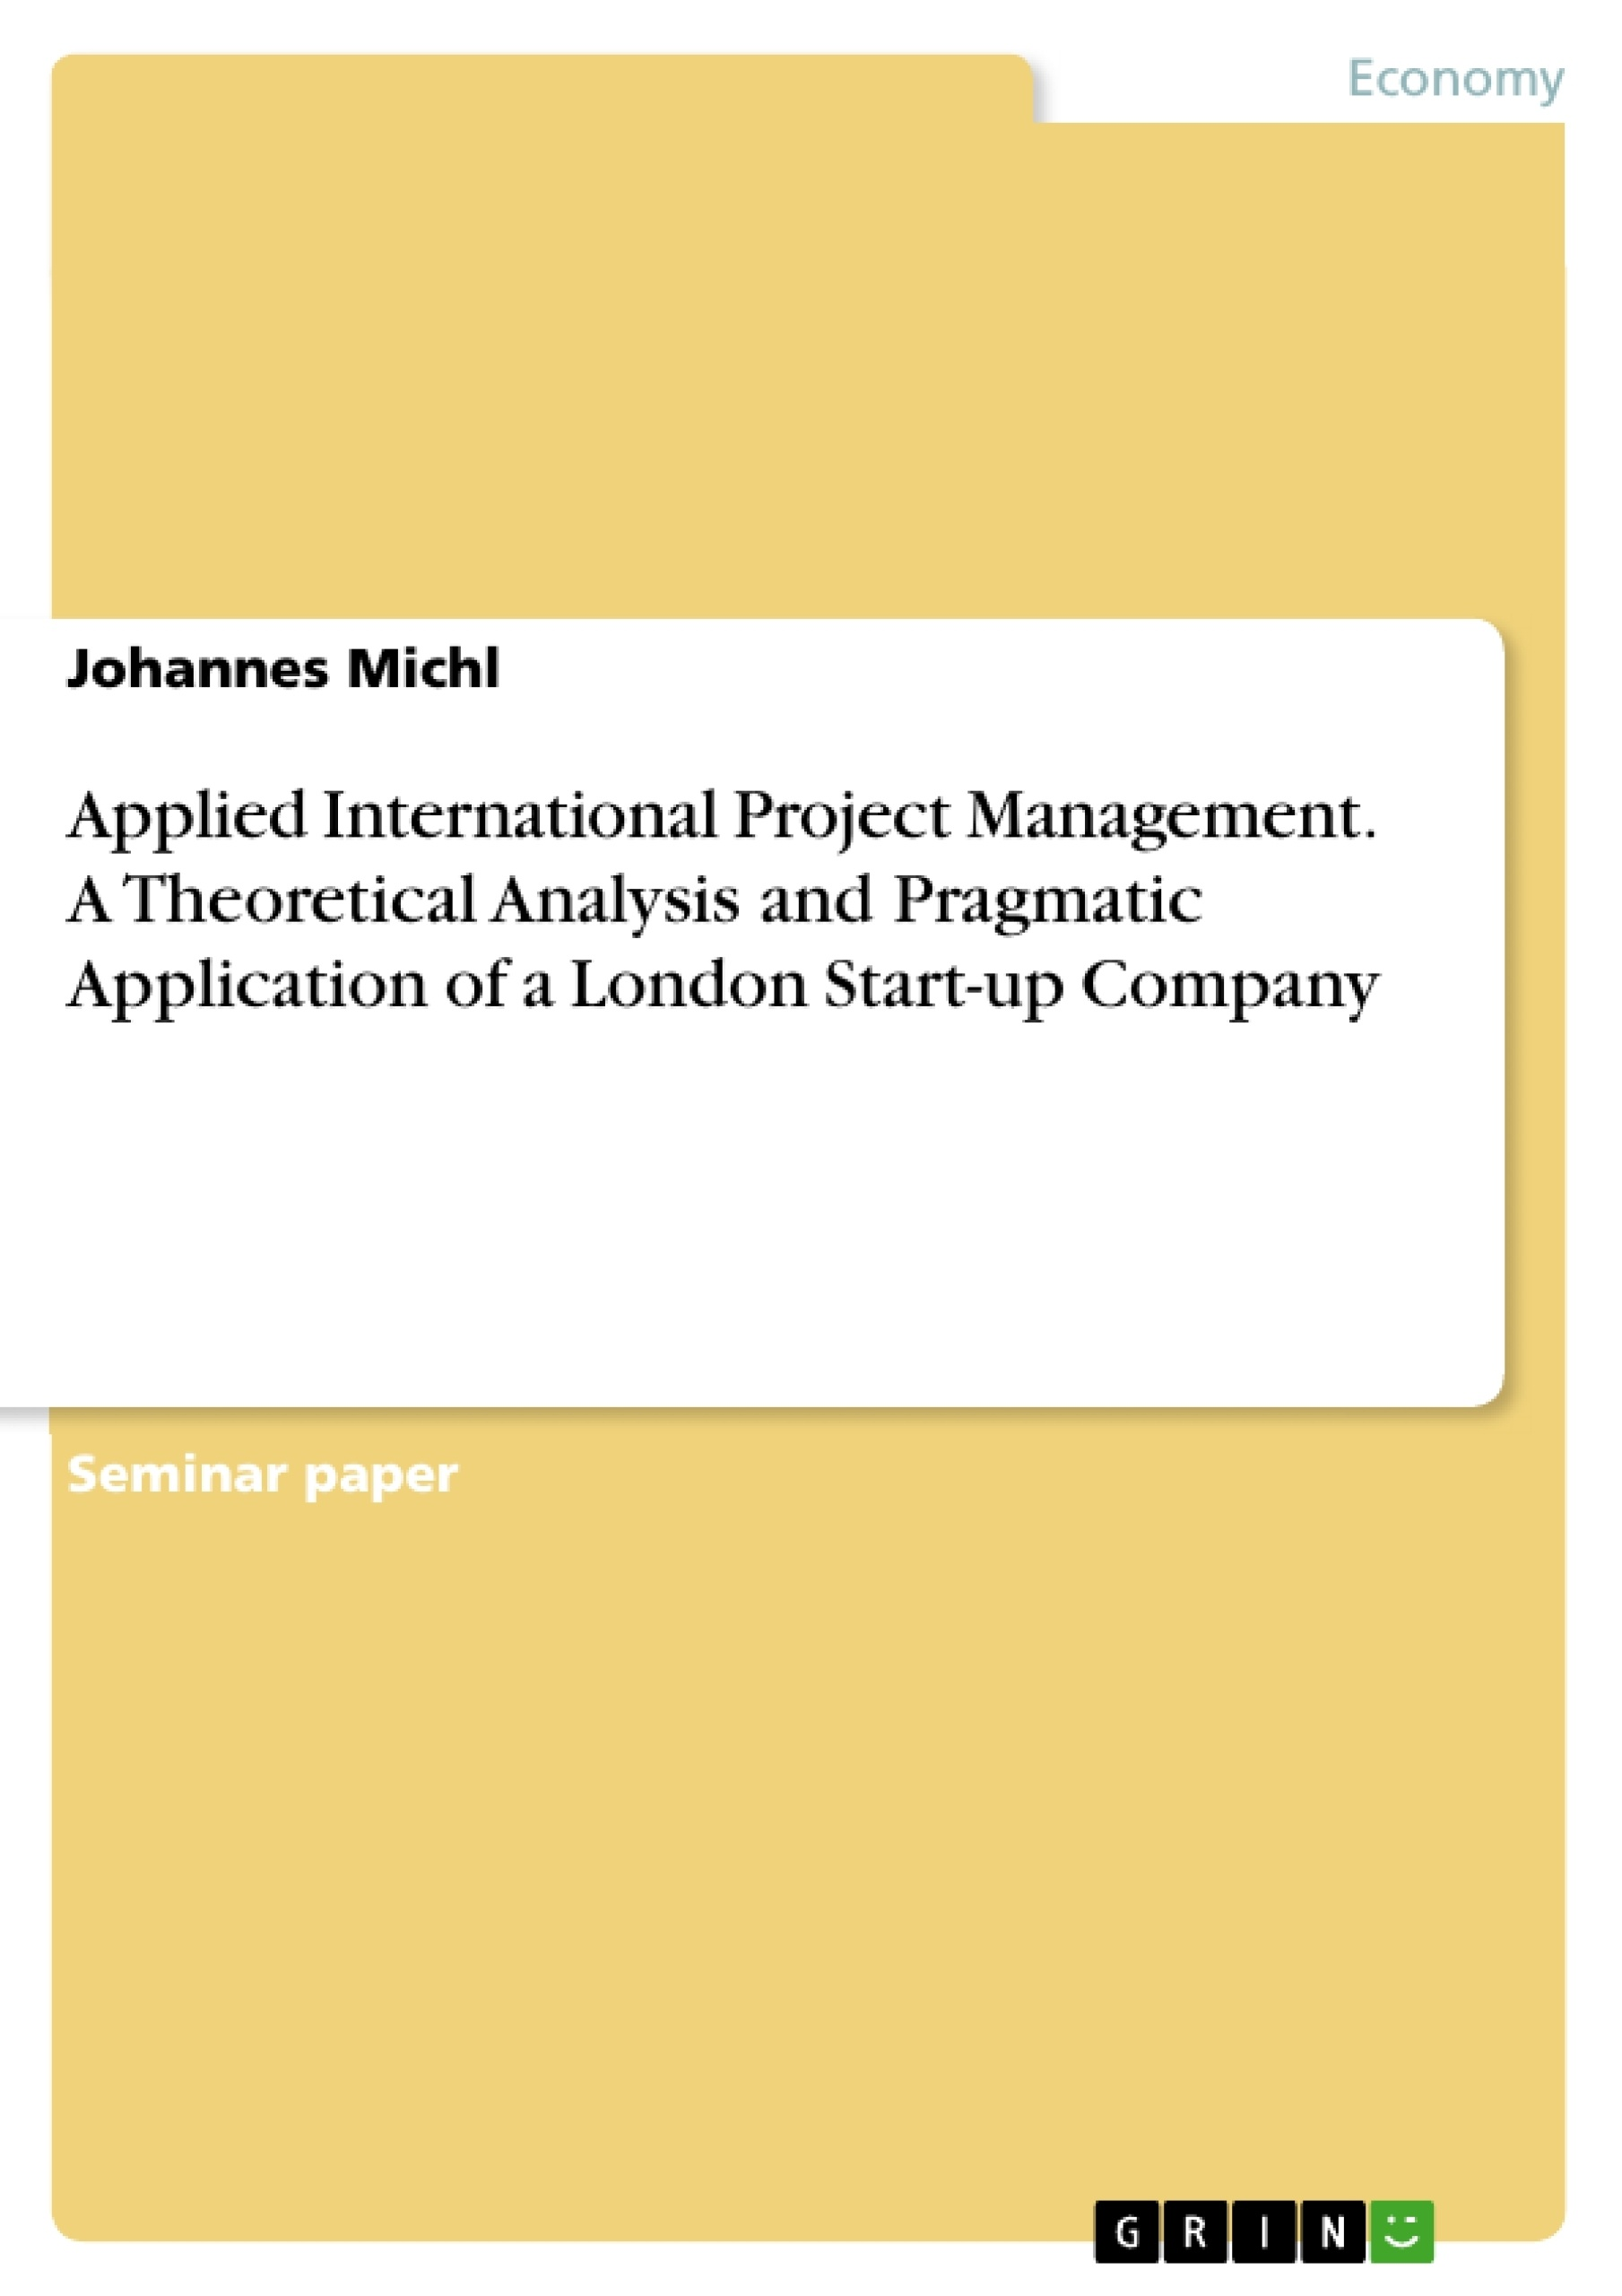 Title: Applied International Project Management. A Theoretical Analysis and Pragmatic Application of a London Start-up Company